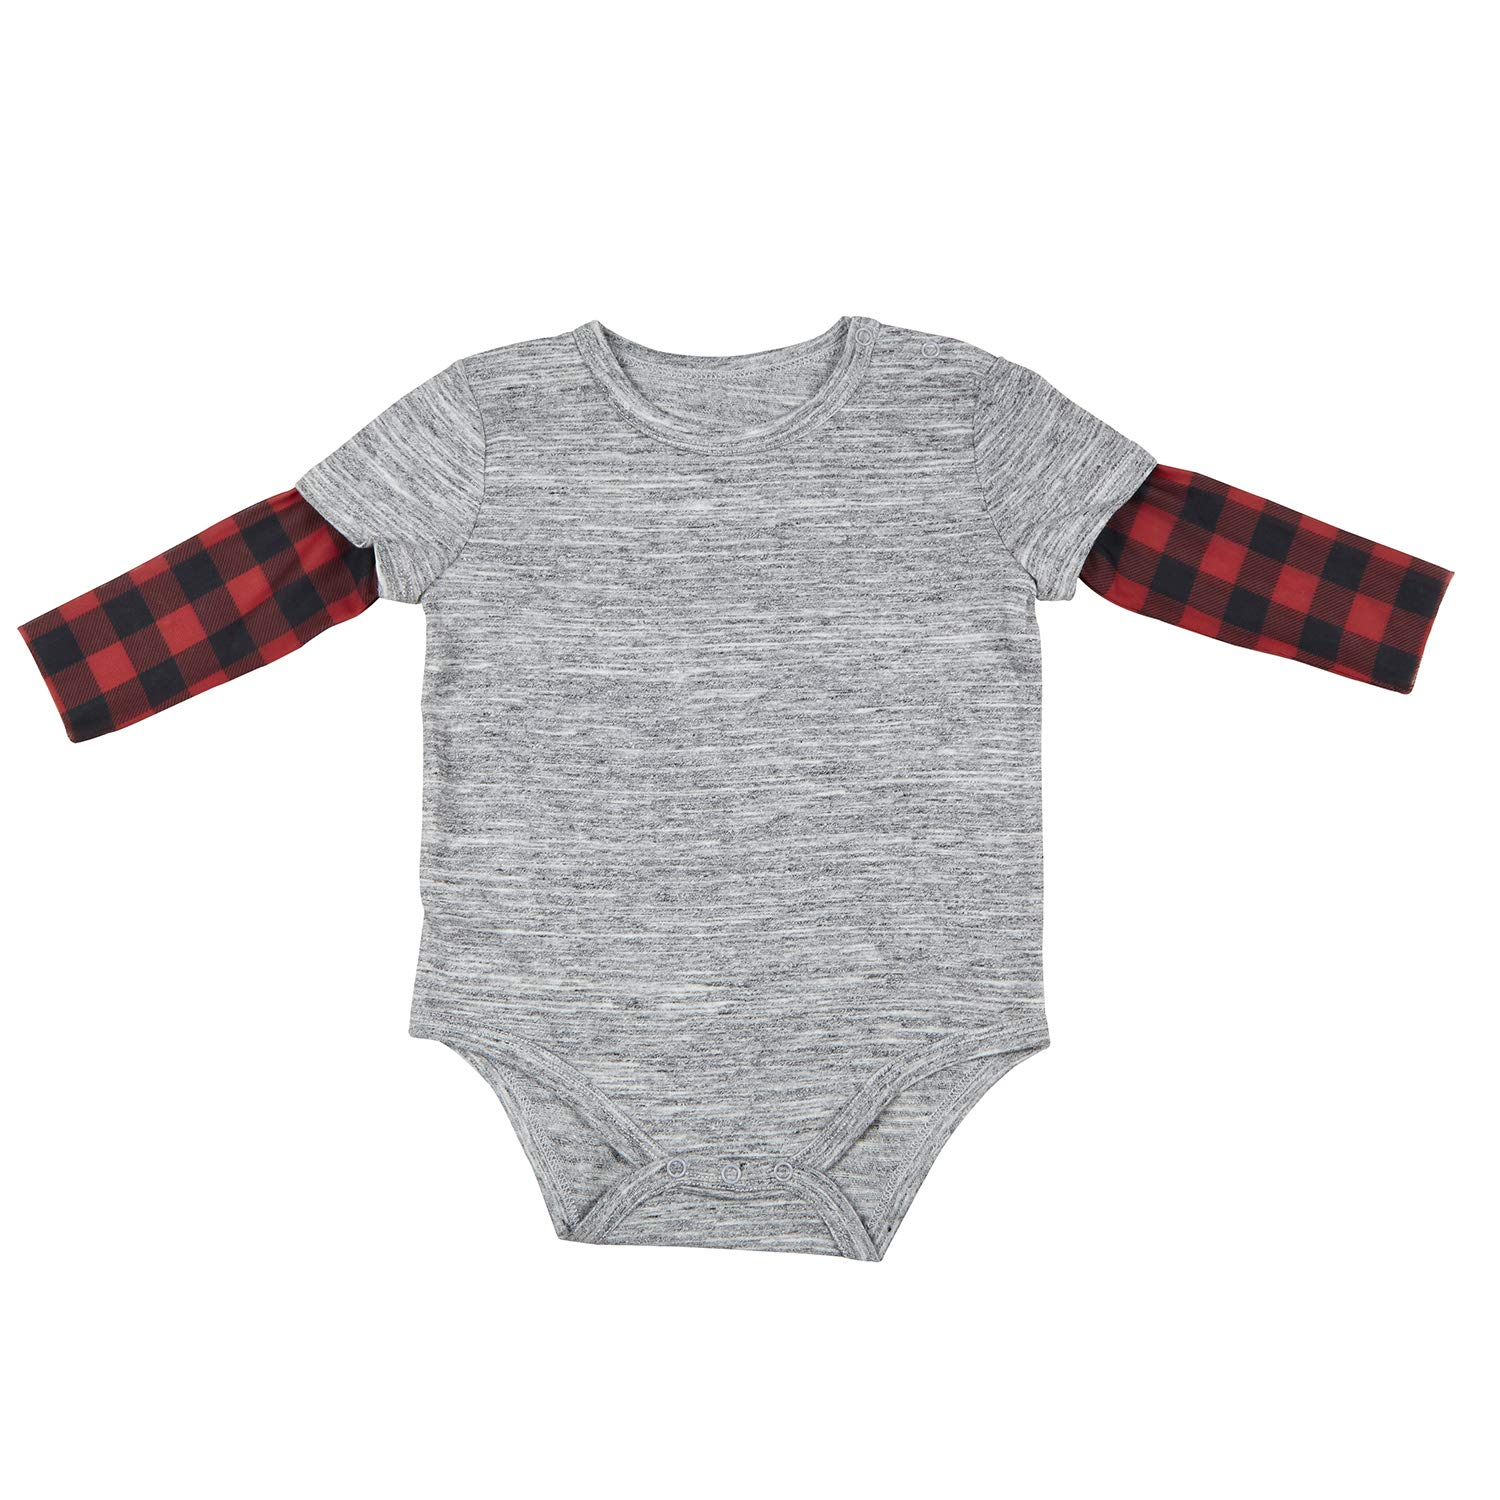 Stephan Baby Snapshirt-Style Diaper Cover with Tattoo Sleeves Fits 6-12 Months Buffalo Checks F4800 Gray